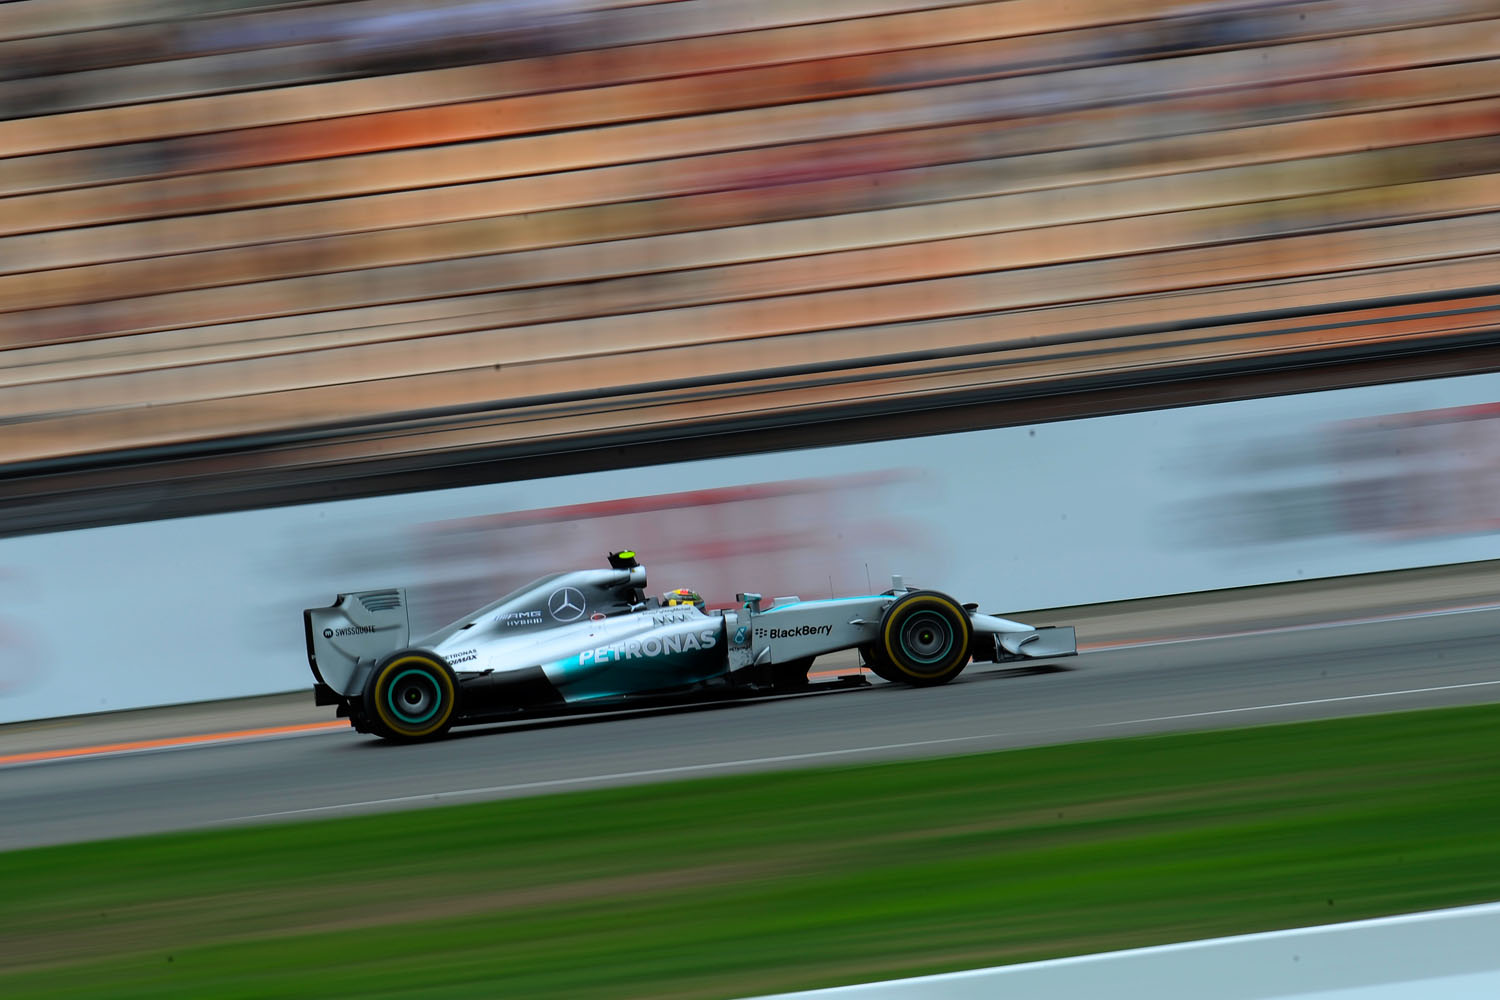 Mercedes AMG Peronas F1 Team